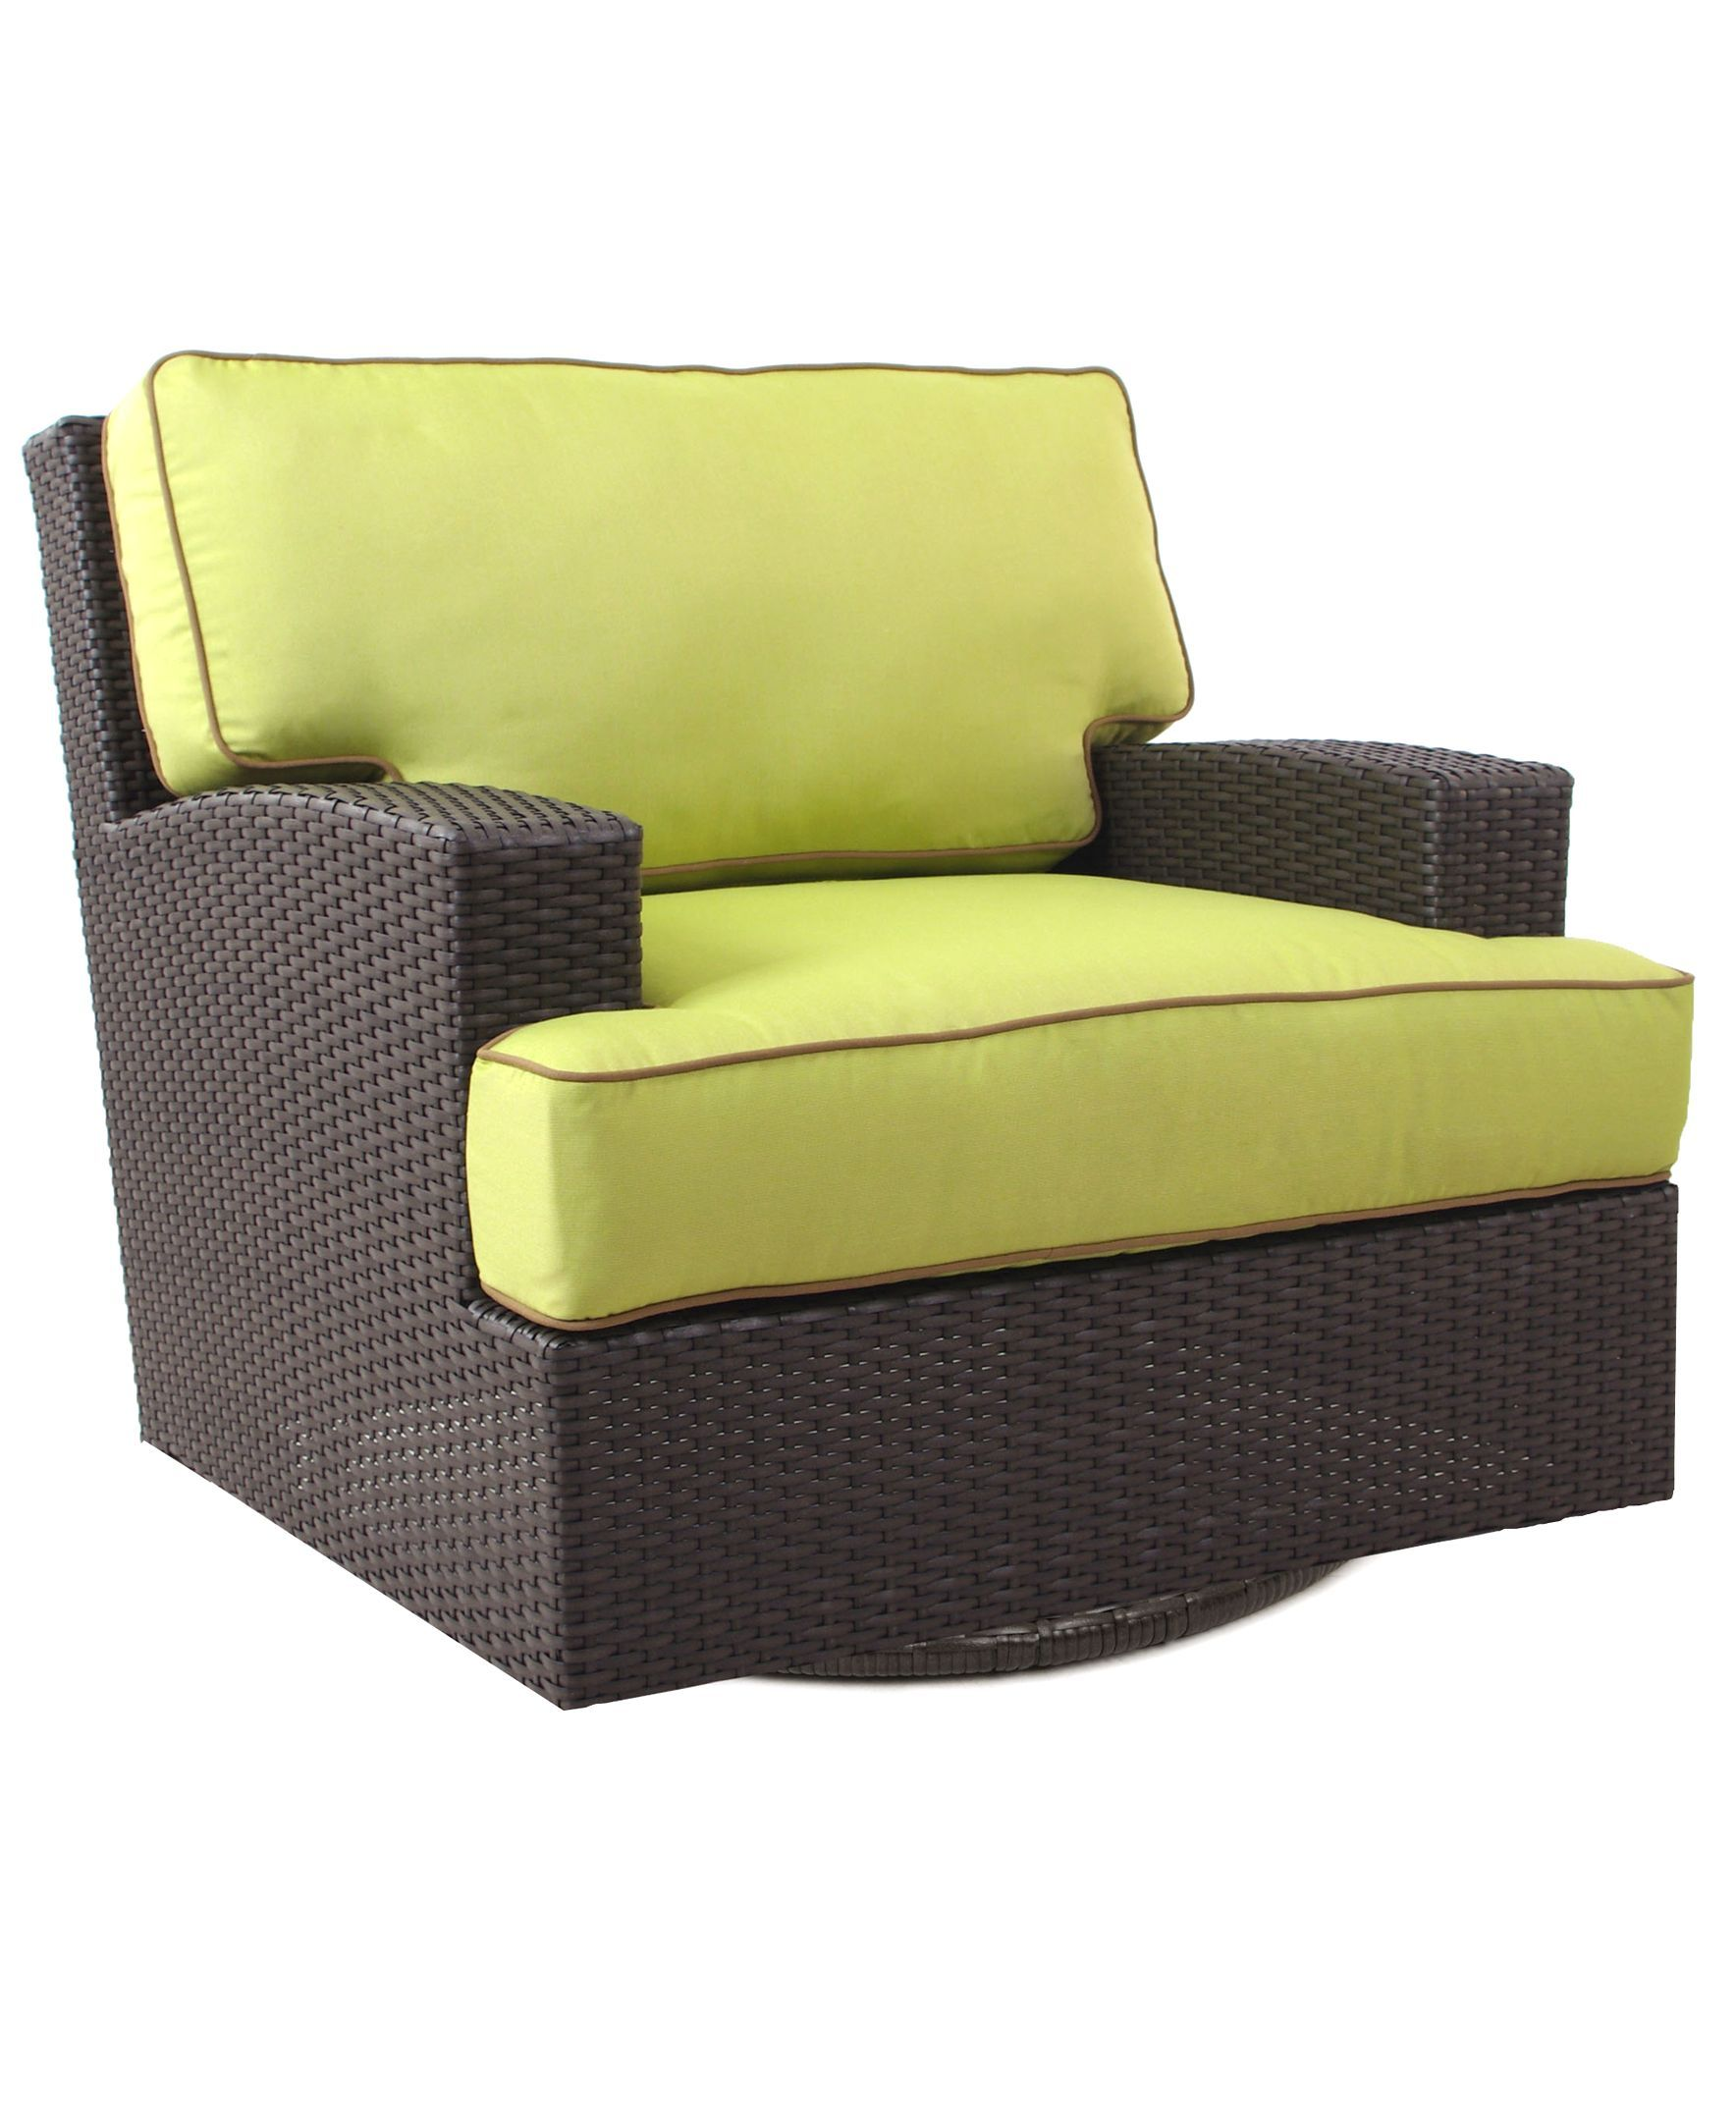 Antigua Wicker Outdoor Swivel Chair   Products   Pinterest